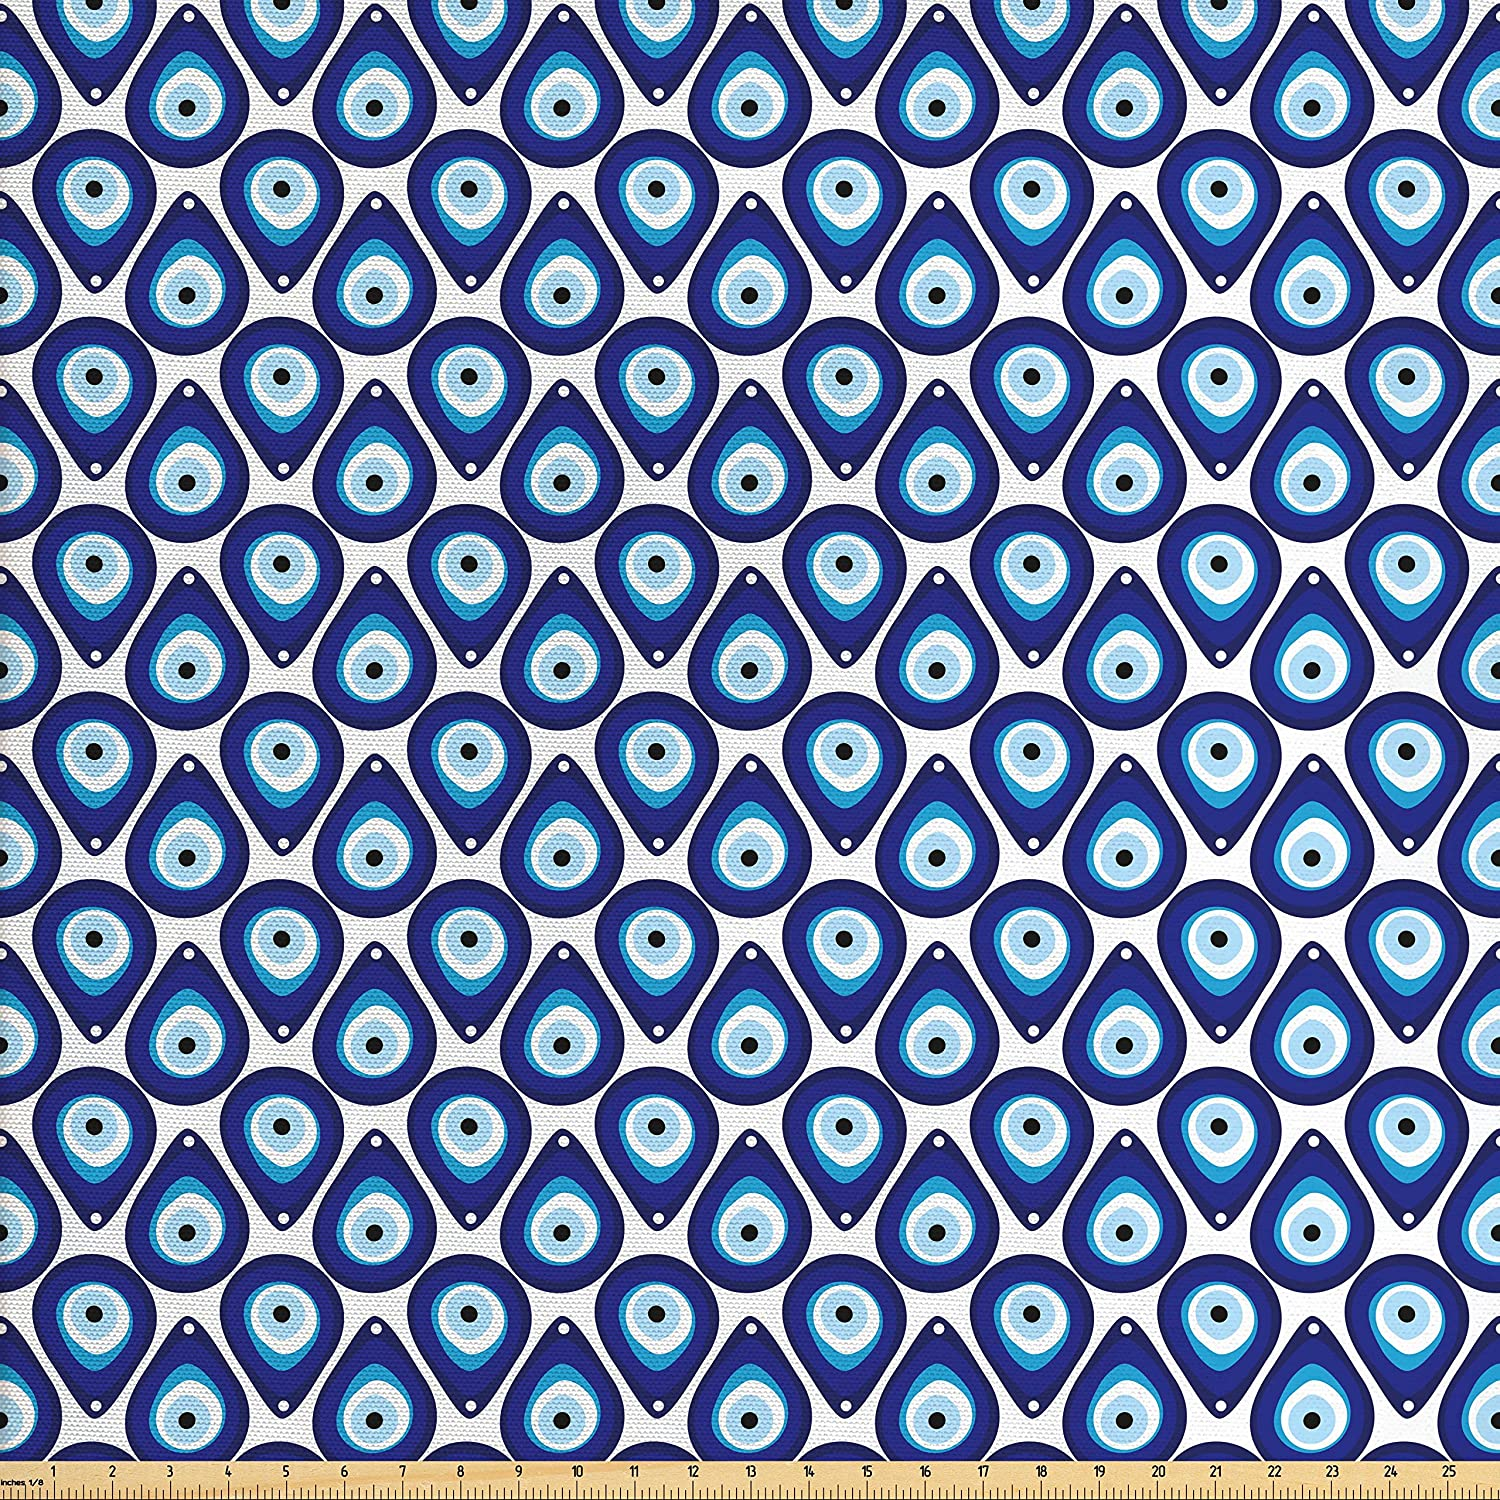 Ambesonne Evil Eye Fabric by The Yard, Water Drops Inspired Shape up and Down Luck Charm Vivid Tile Design, Decorative Fabric for Upholstery and Home Accents, Blue Pale Blue White